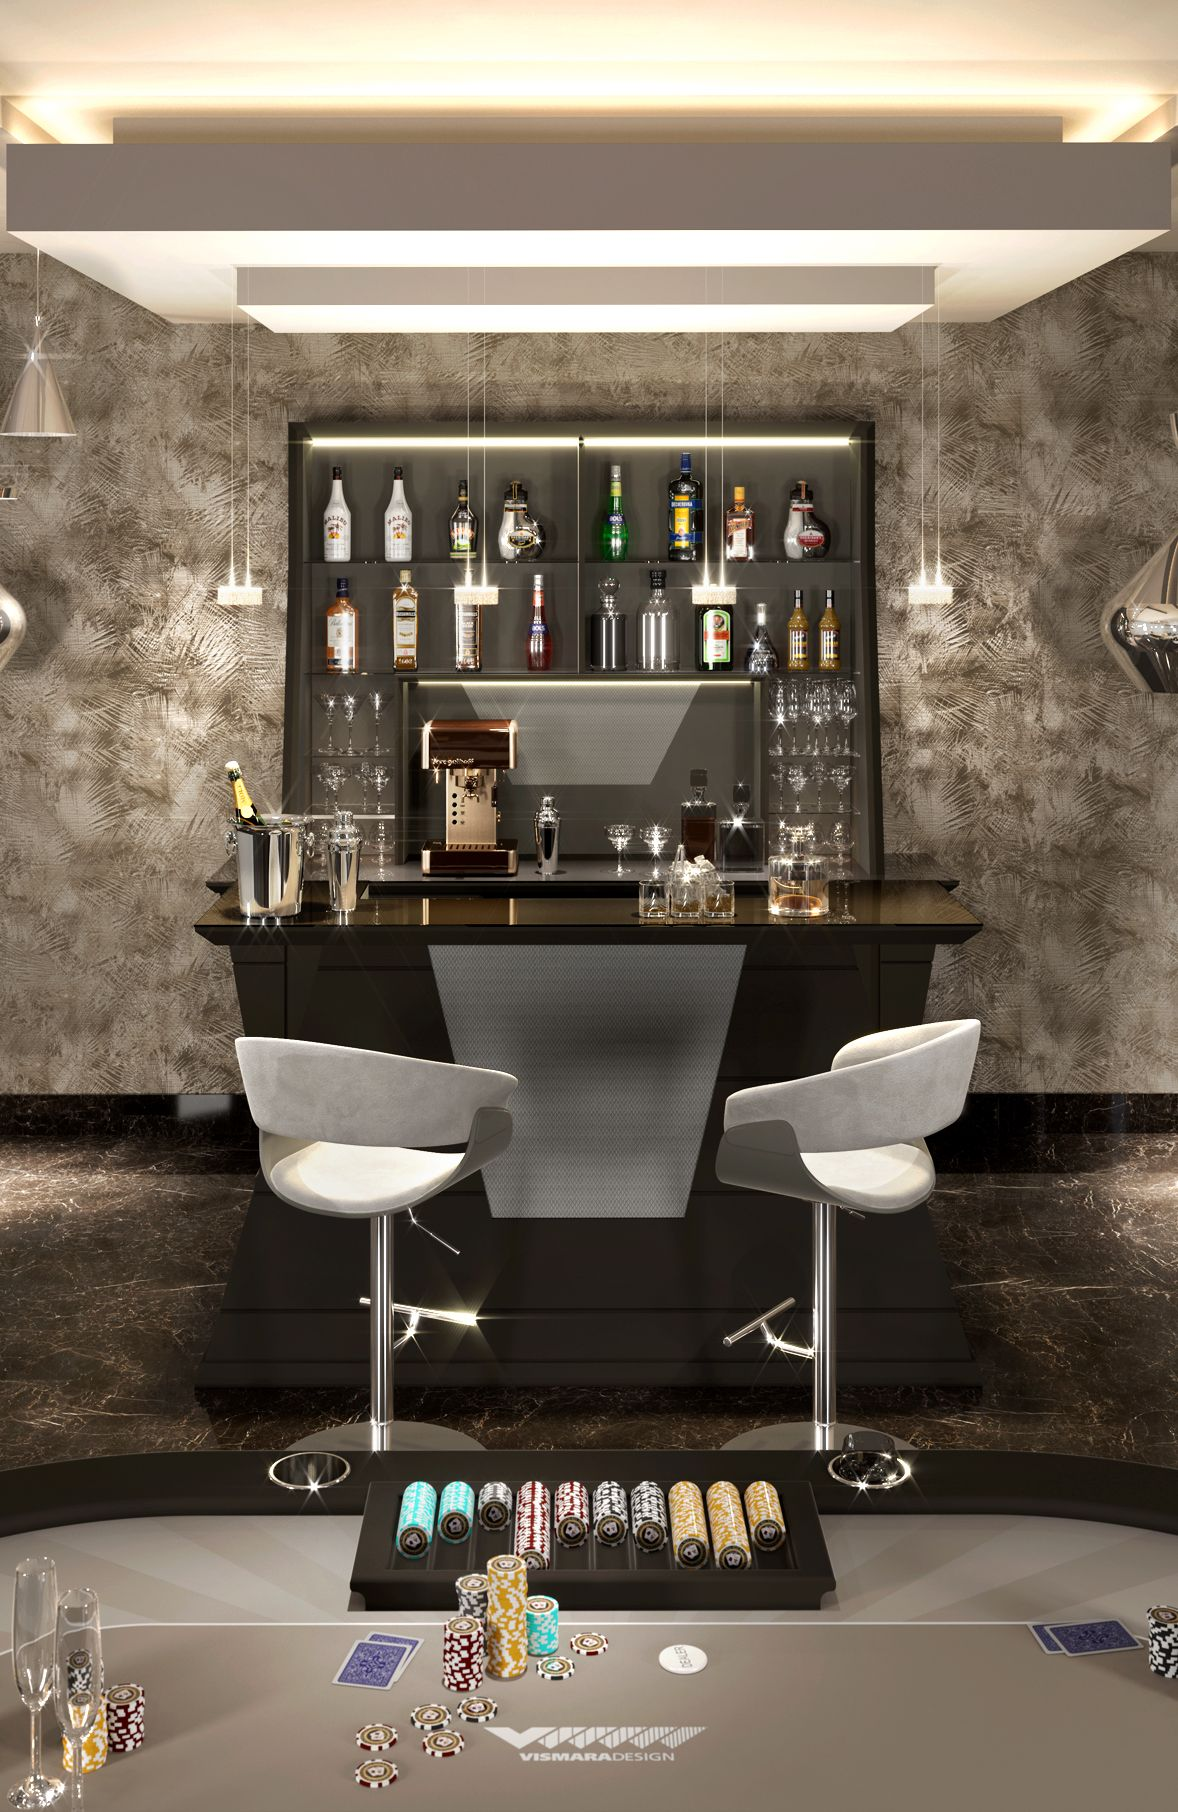 Bar furniture by Vismara Design, complete of all convenience like professional wine cellar, coffee machine and other usefull bar tools.